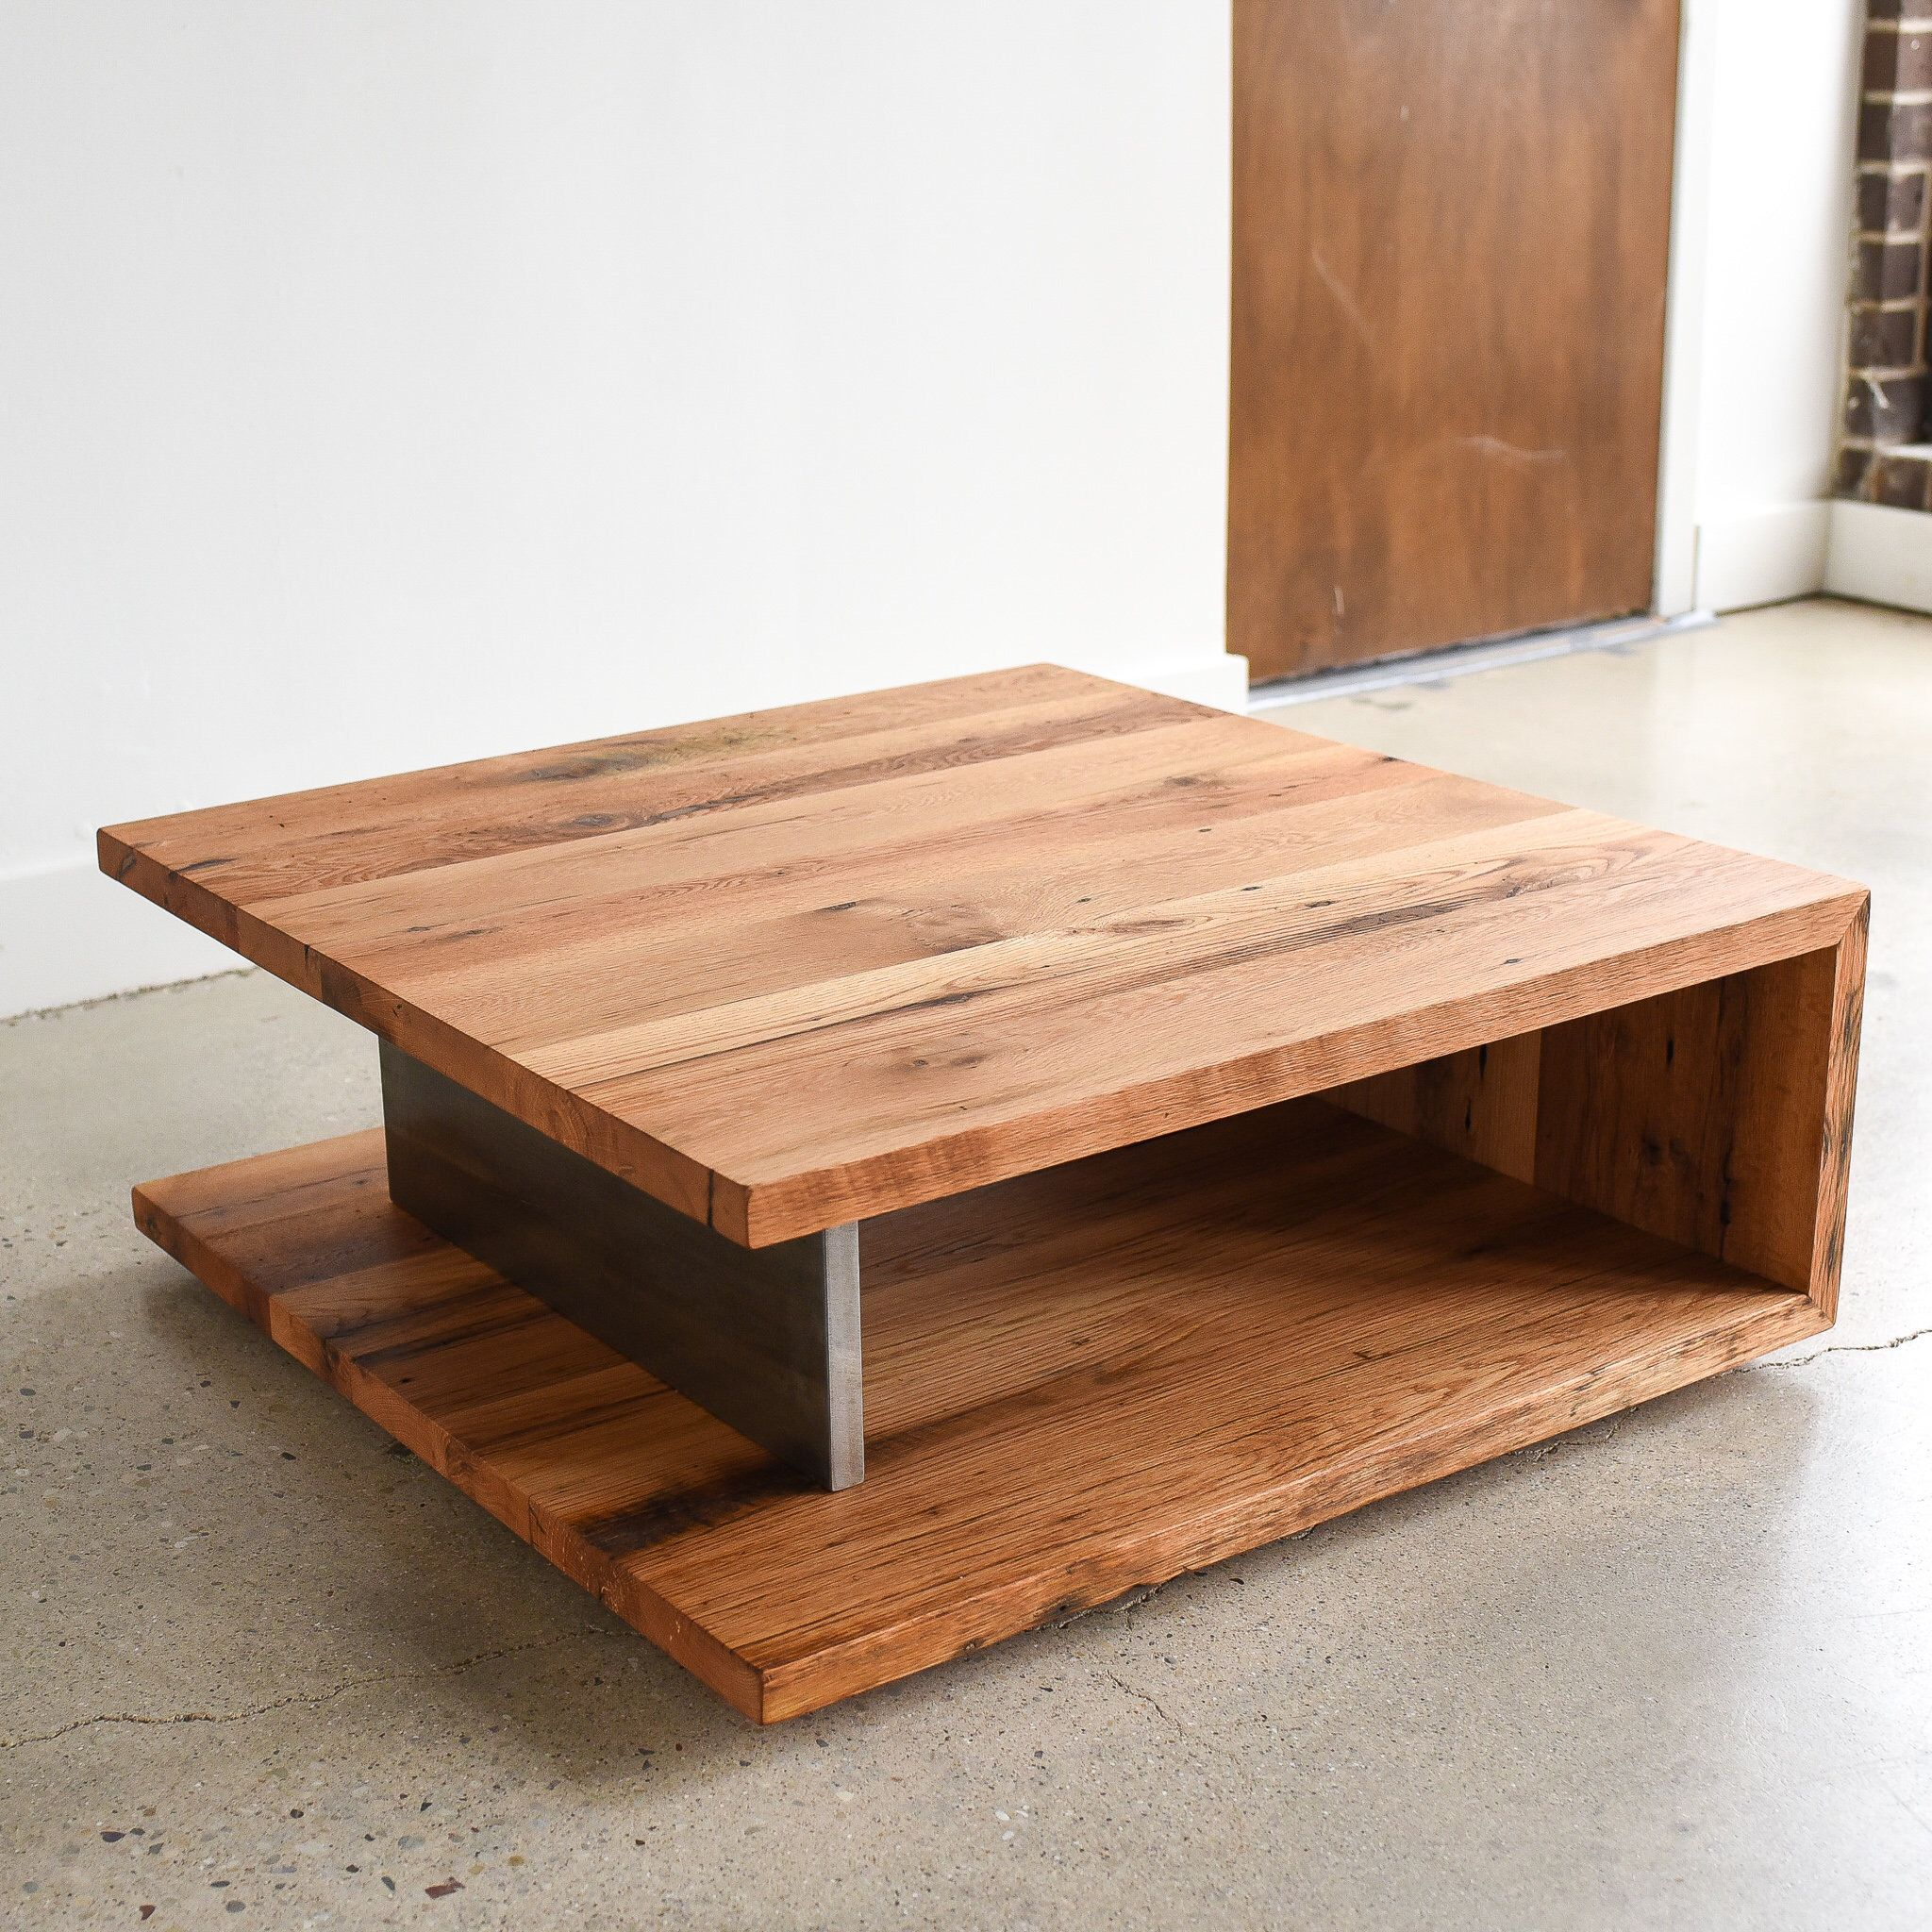 Modern Coffee Table Square Open Shelf Coffee Table Made From Reclaimed Wood Modern Square Coffee Table Modern Wood Coffee Table Coffee Table Square [ 2048 x 2048 Pixel ]